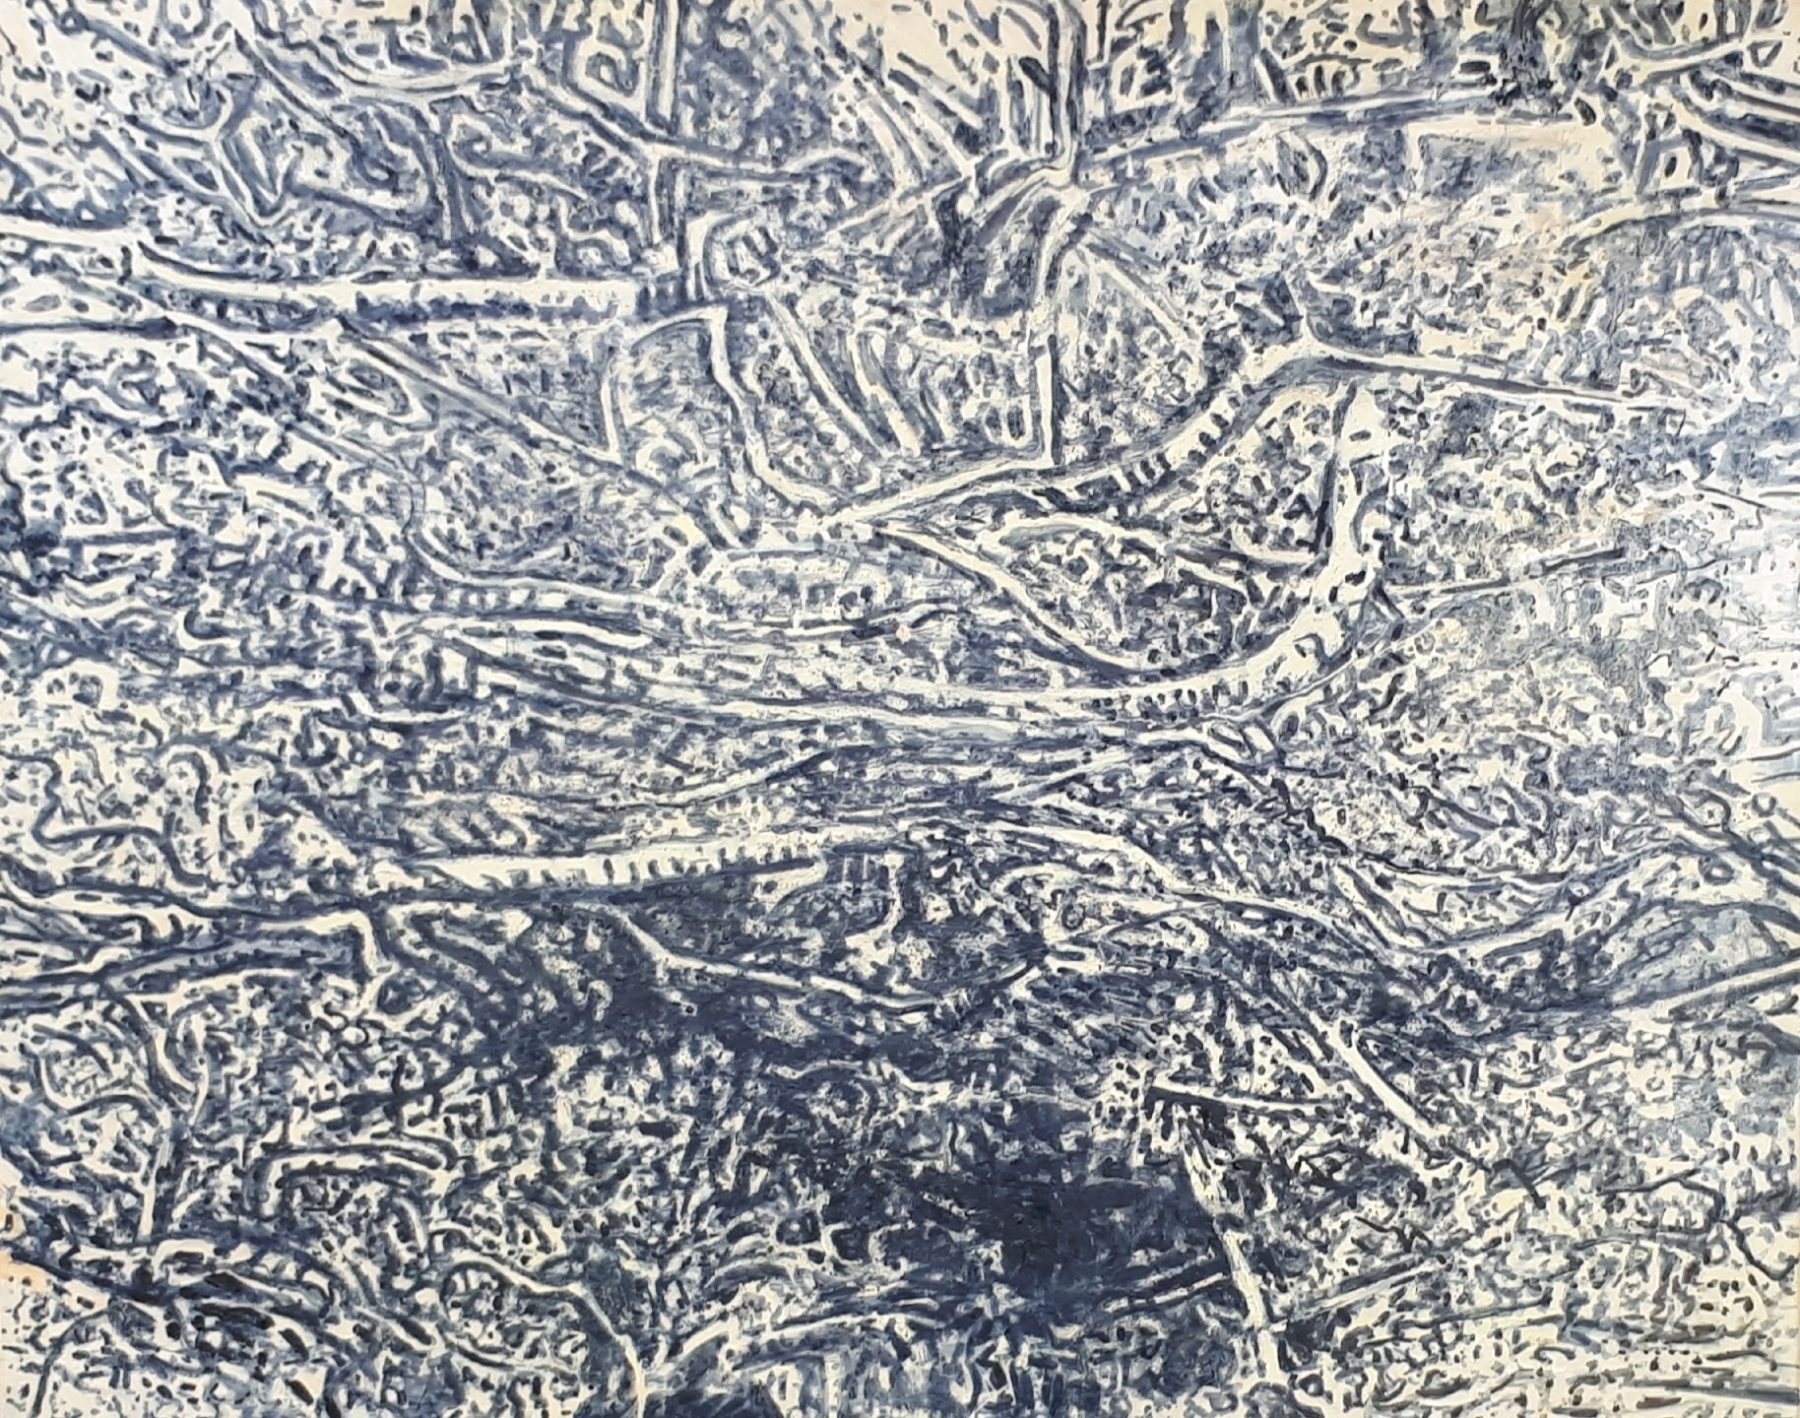 Tightly packed black and white lines intersect to create a mass of branches on the canvas.